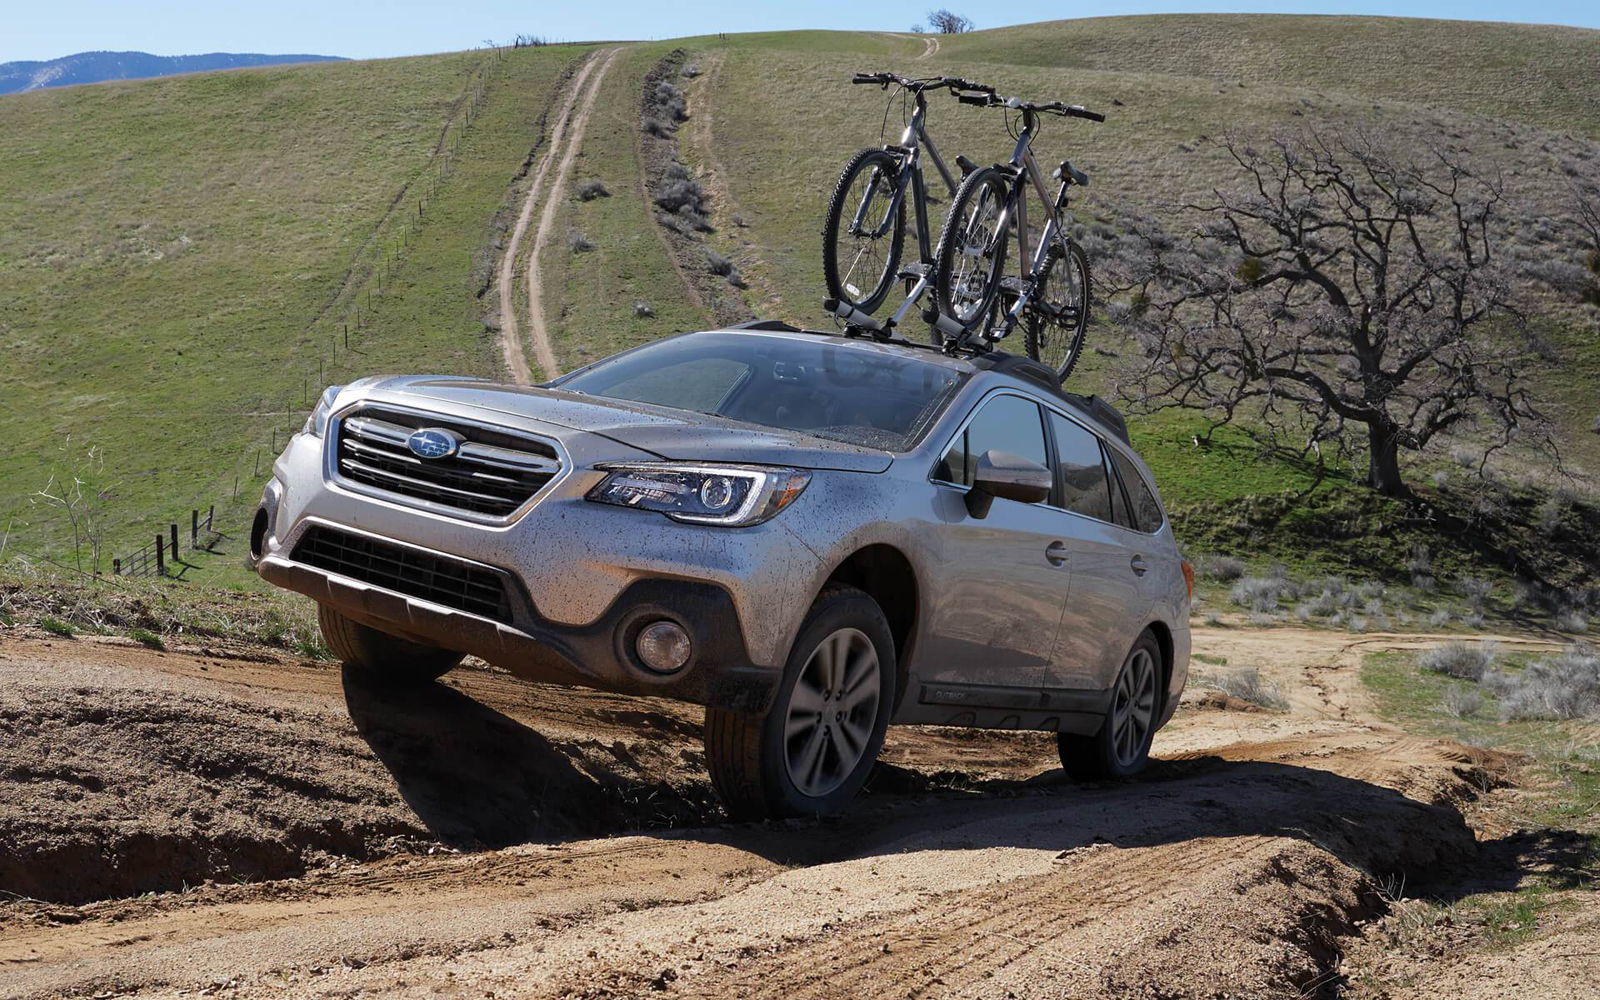 Which Subaru is Better – Forester or Outback? - 0-60 Specs